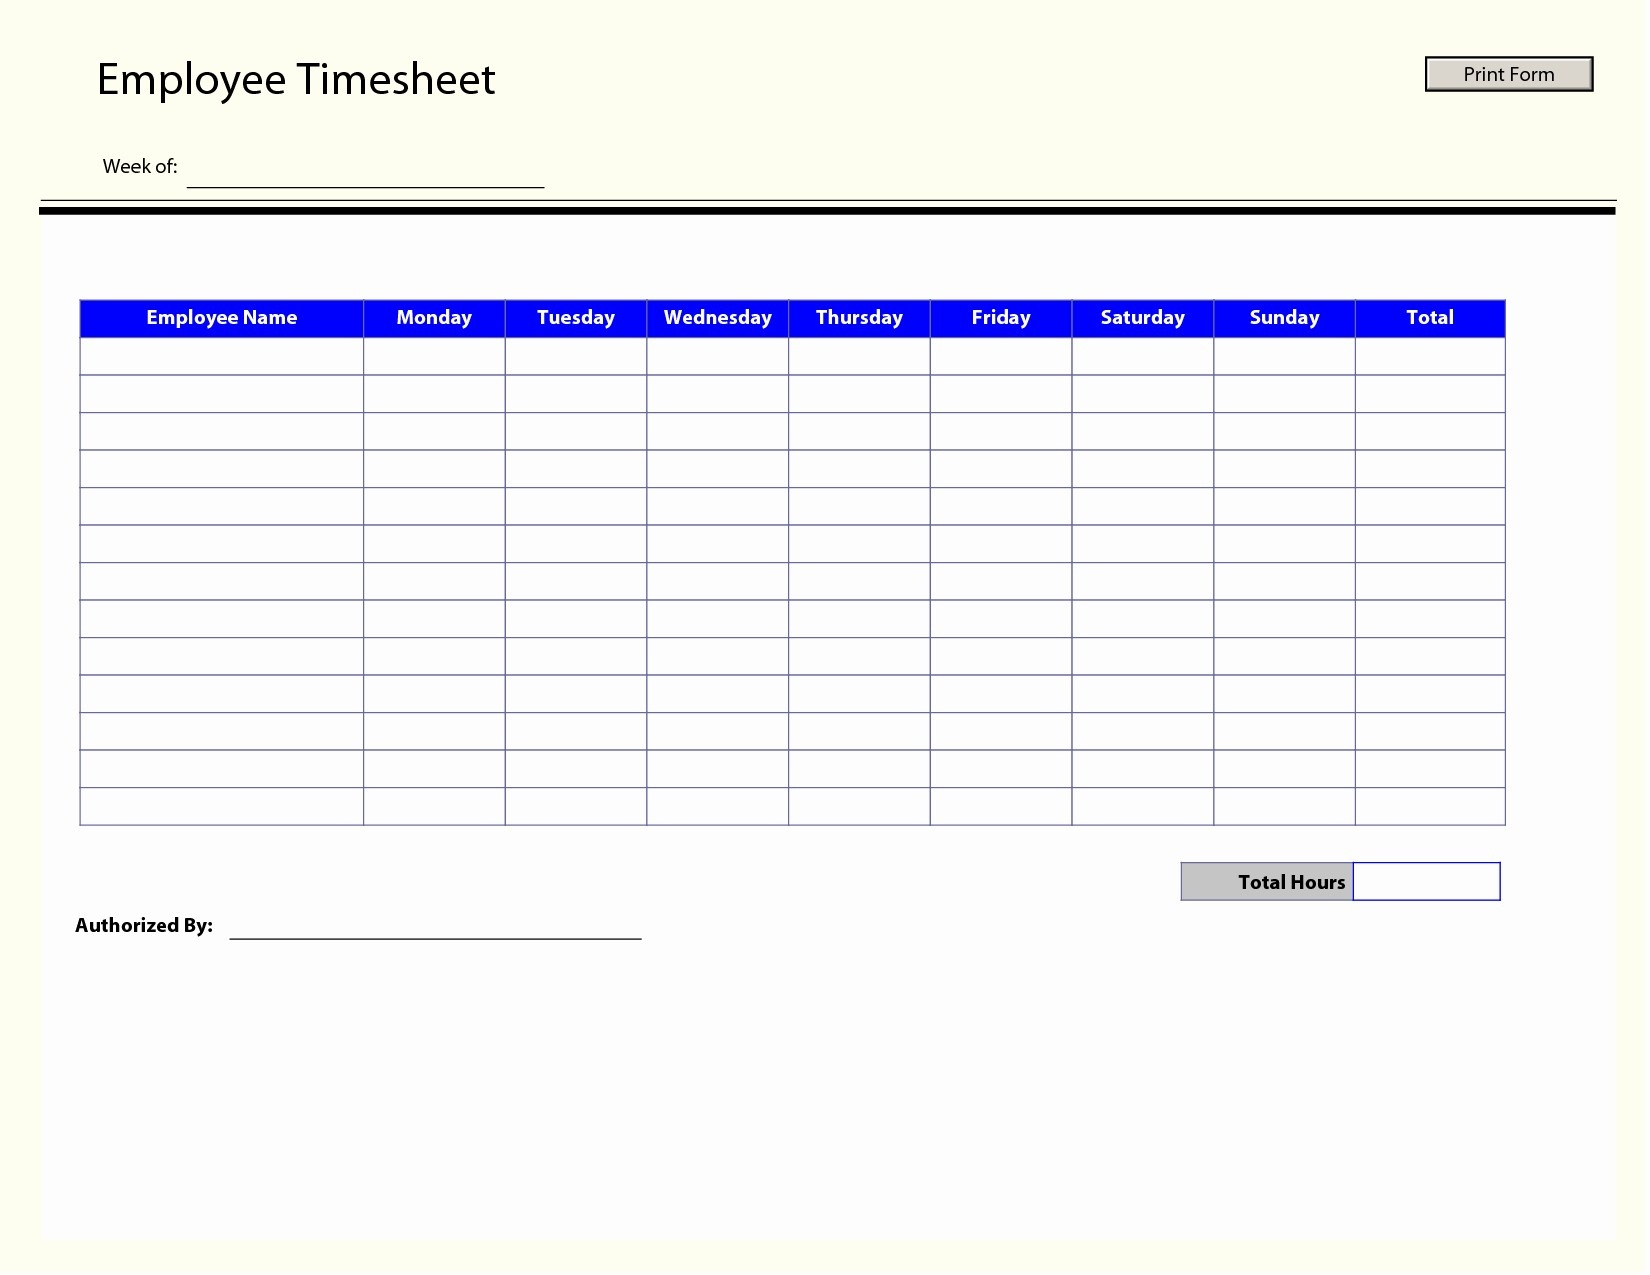 Employee Weekly Timesheet Template Excel Archives - Mavensocial.co - Timesheet Template Free Printable